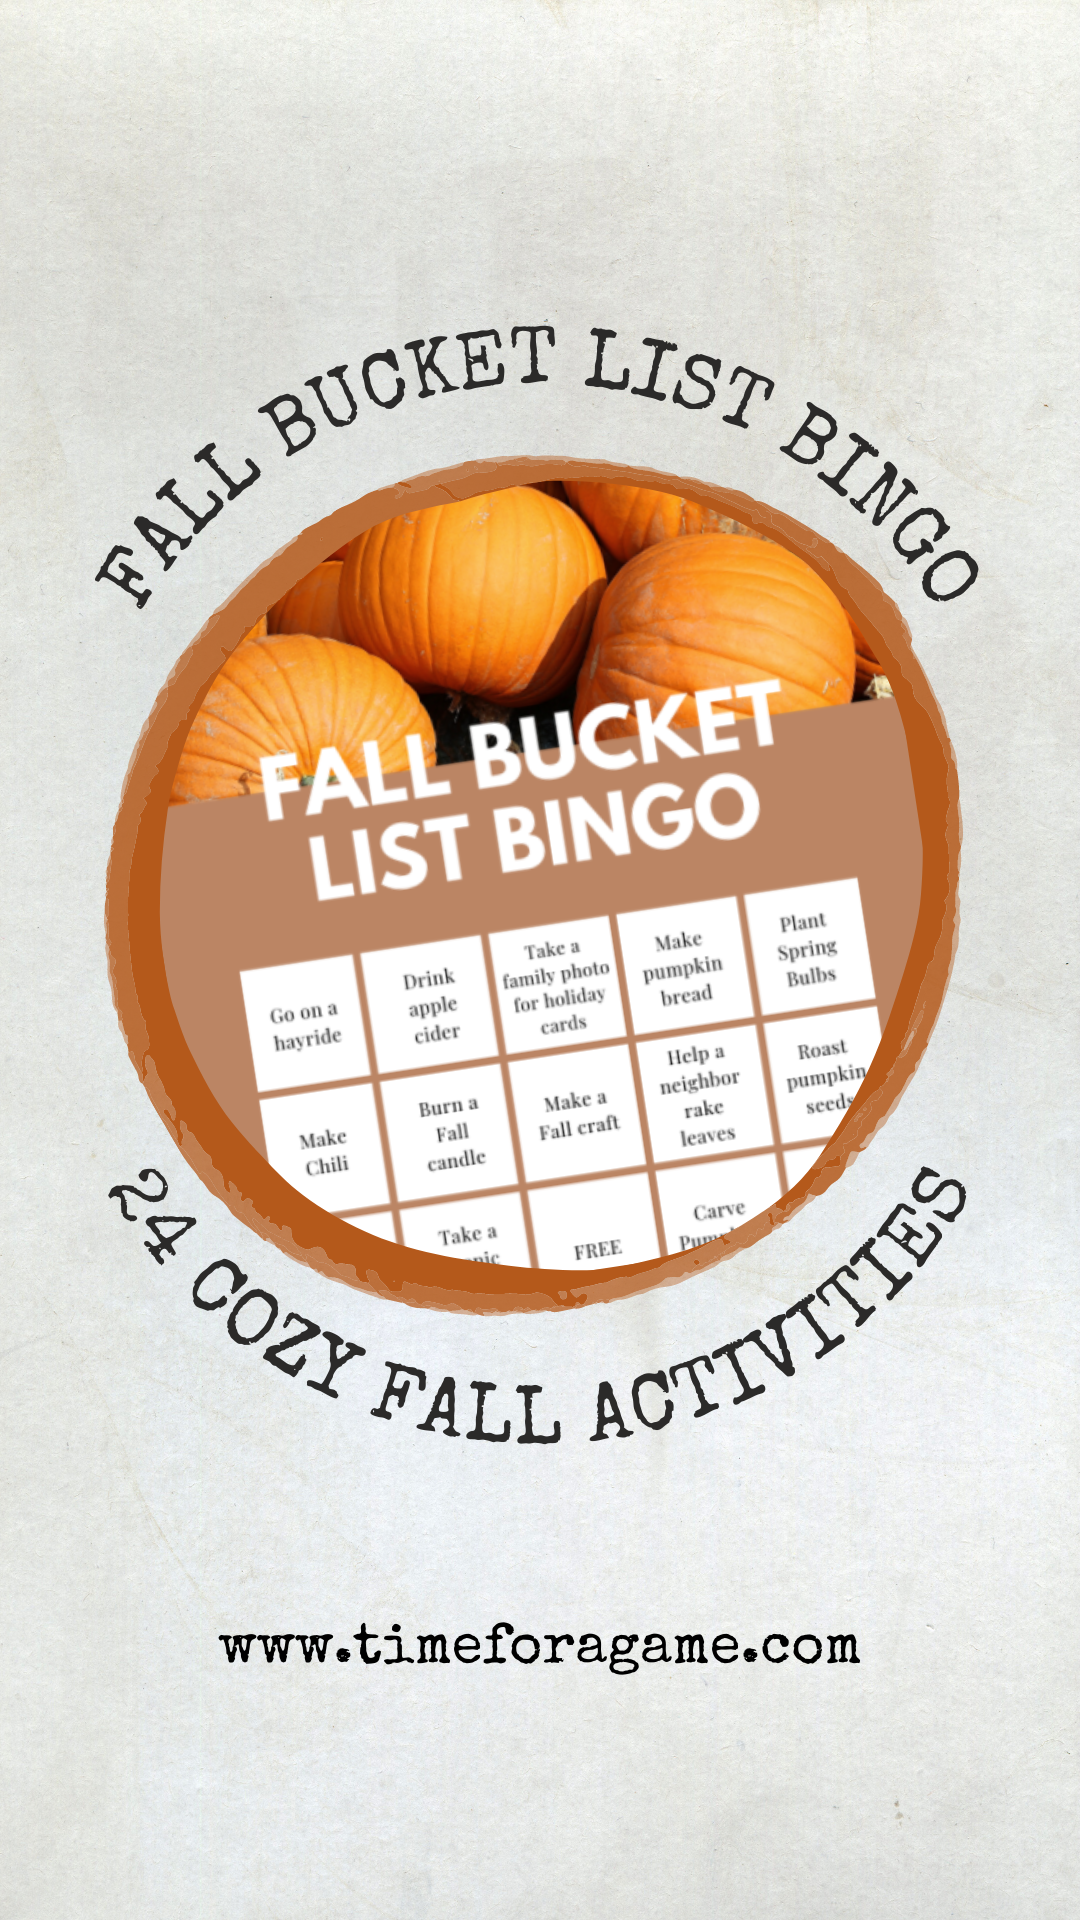 Throw on your coziest sweater and get ready to sip that pumpkin spiced latte because Fall is just around the corner!  Here is a fun way to start thinking about the Fall things you would like to mark off your bucket list!  #bucketlist #fall #autumn #bingo #timeforagame